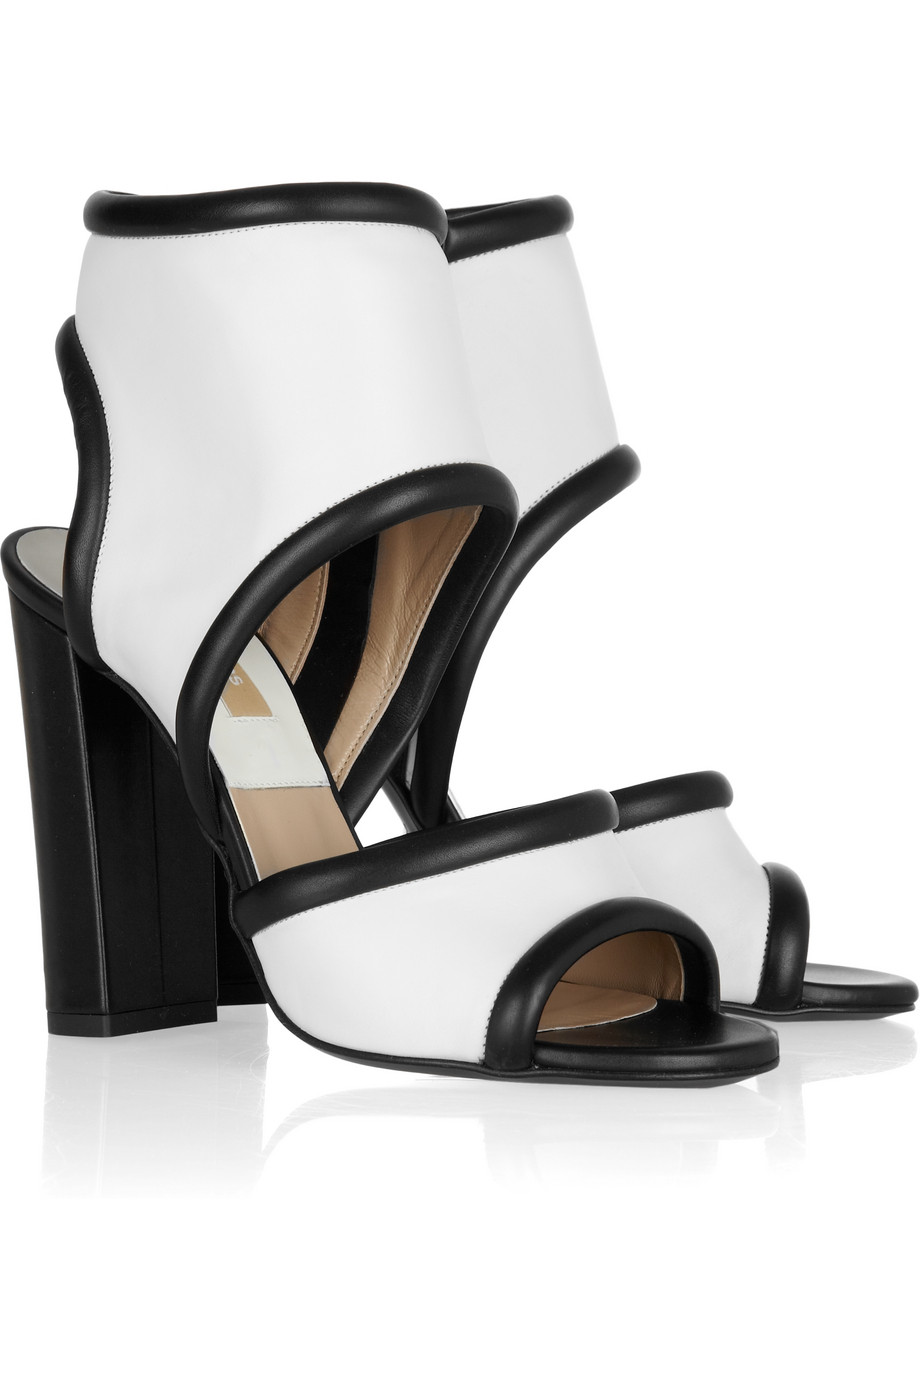 michael kors leather cuff sandals in black lyst